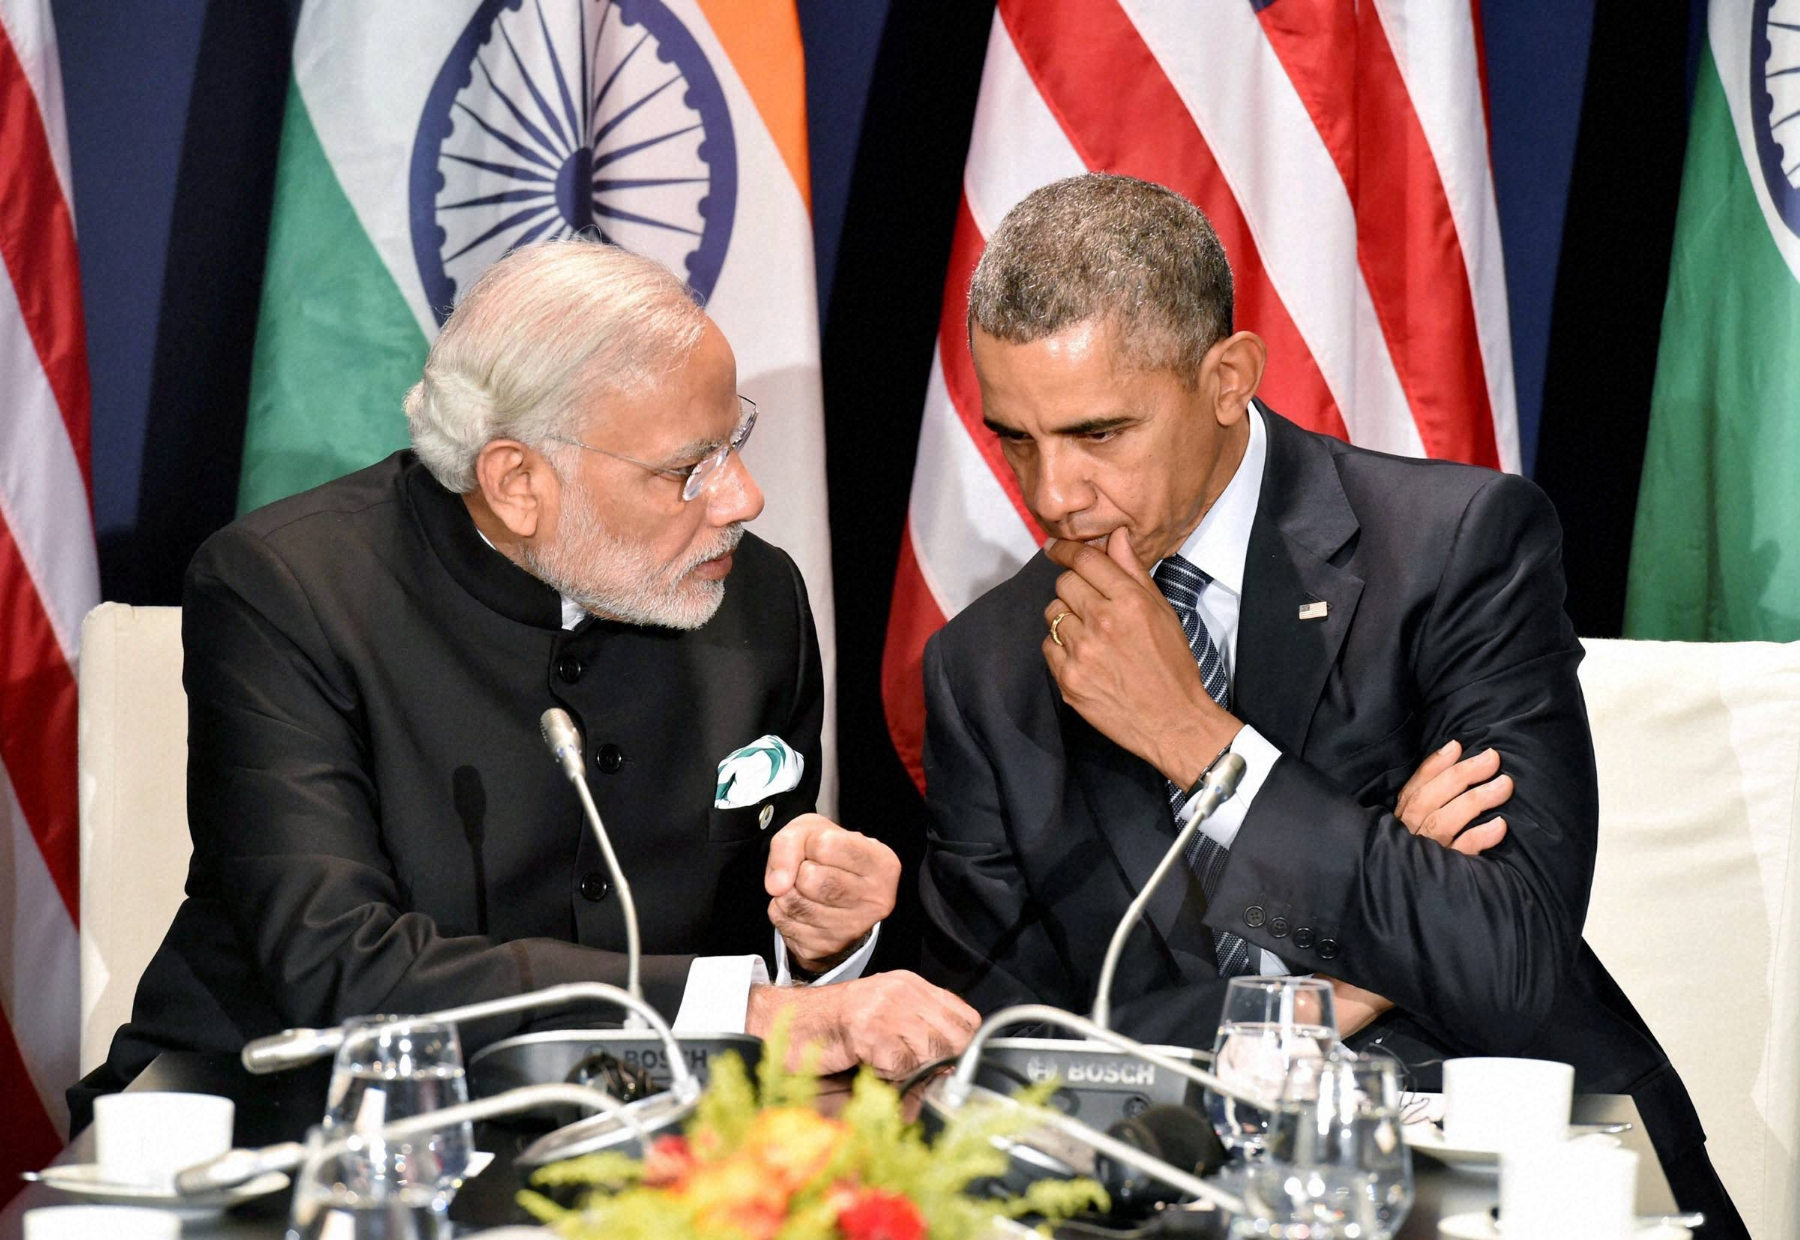 Will fulfil all responsibilities on climate change: Modi to Obama